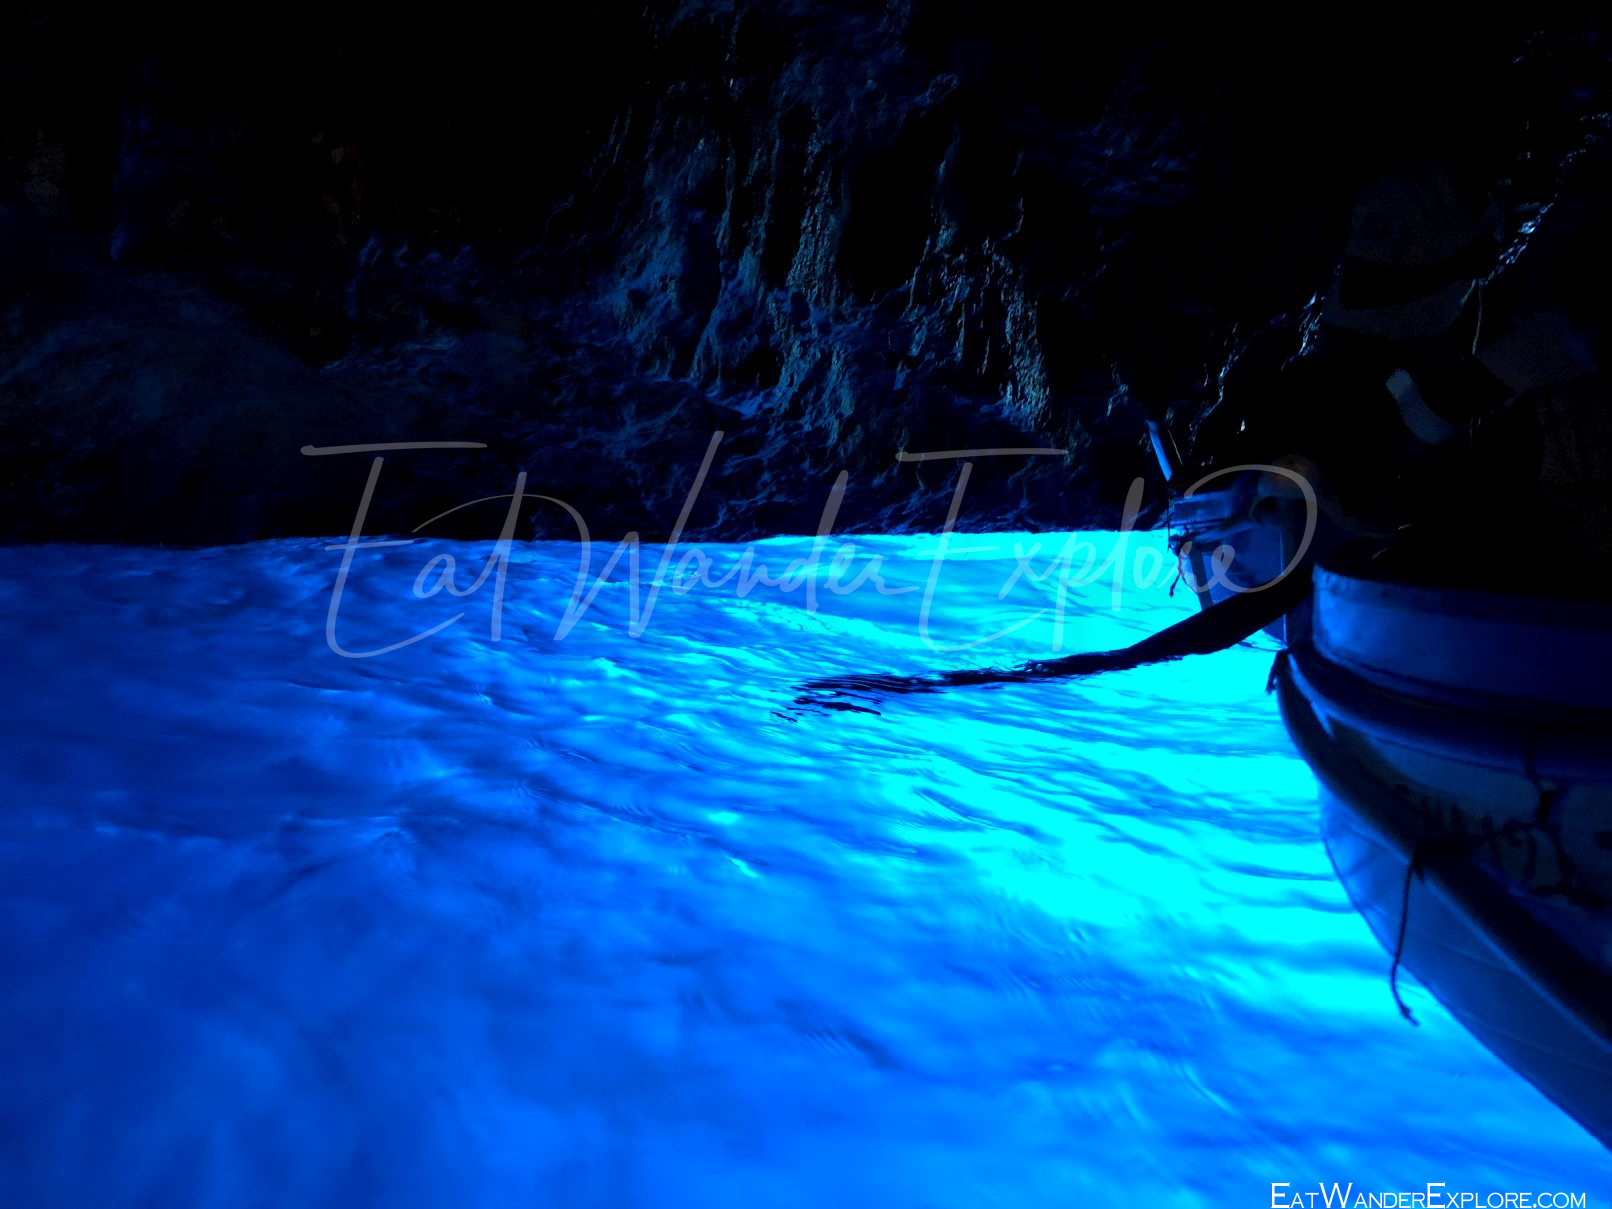 boat in the blue grotto and glowing water